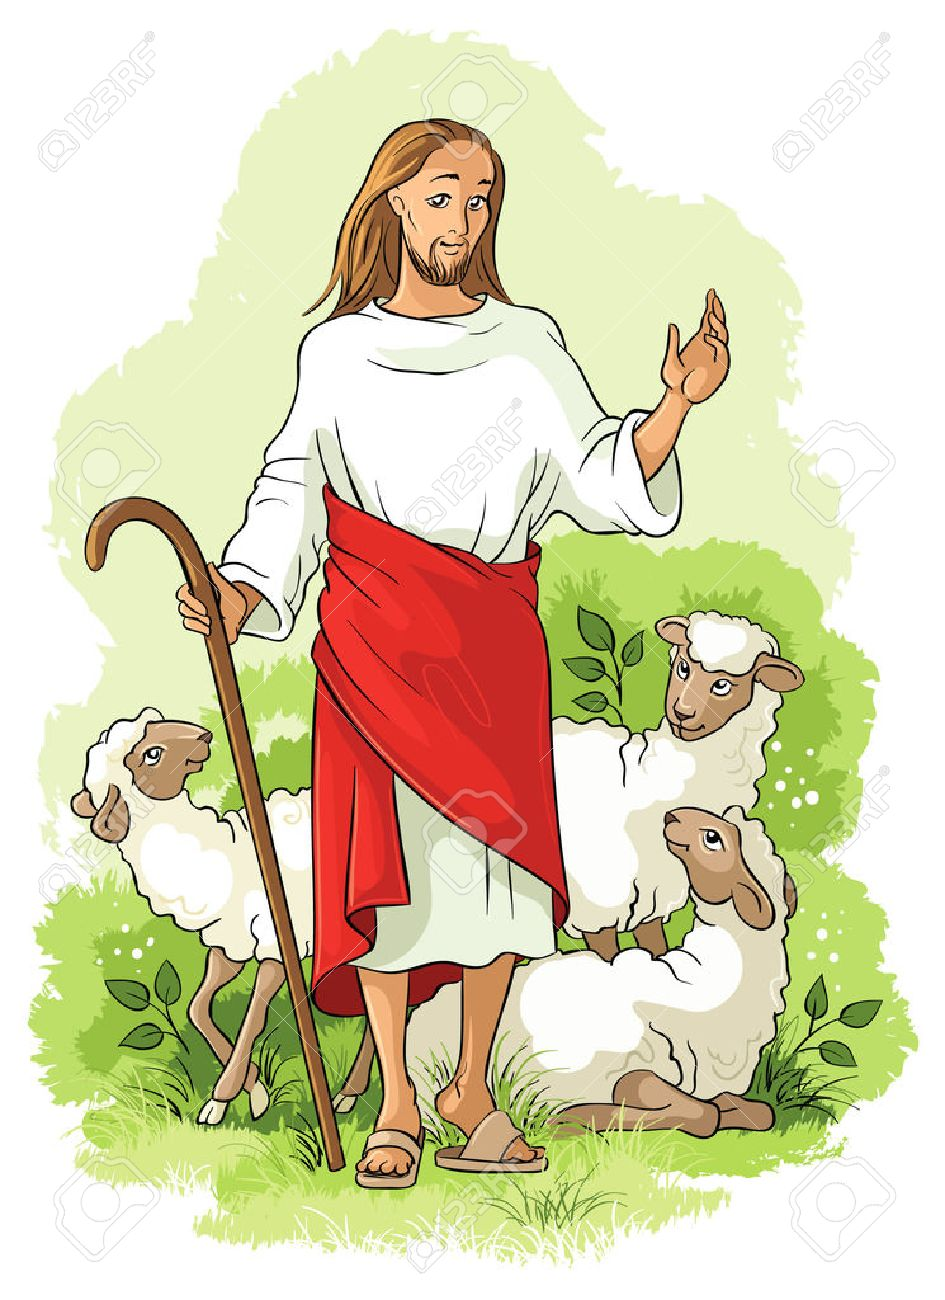 Jesus is a good shepherd. Christian illustration.